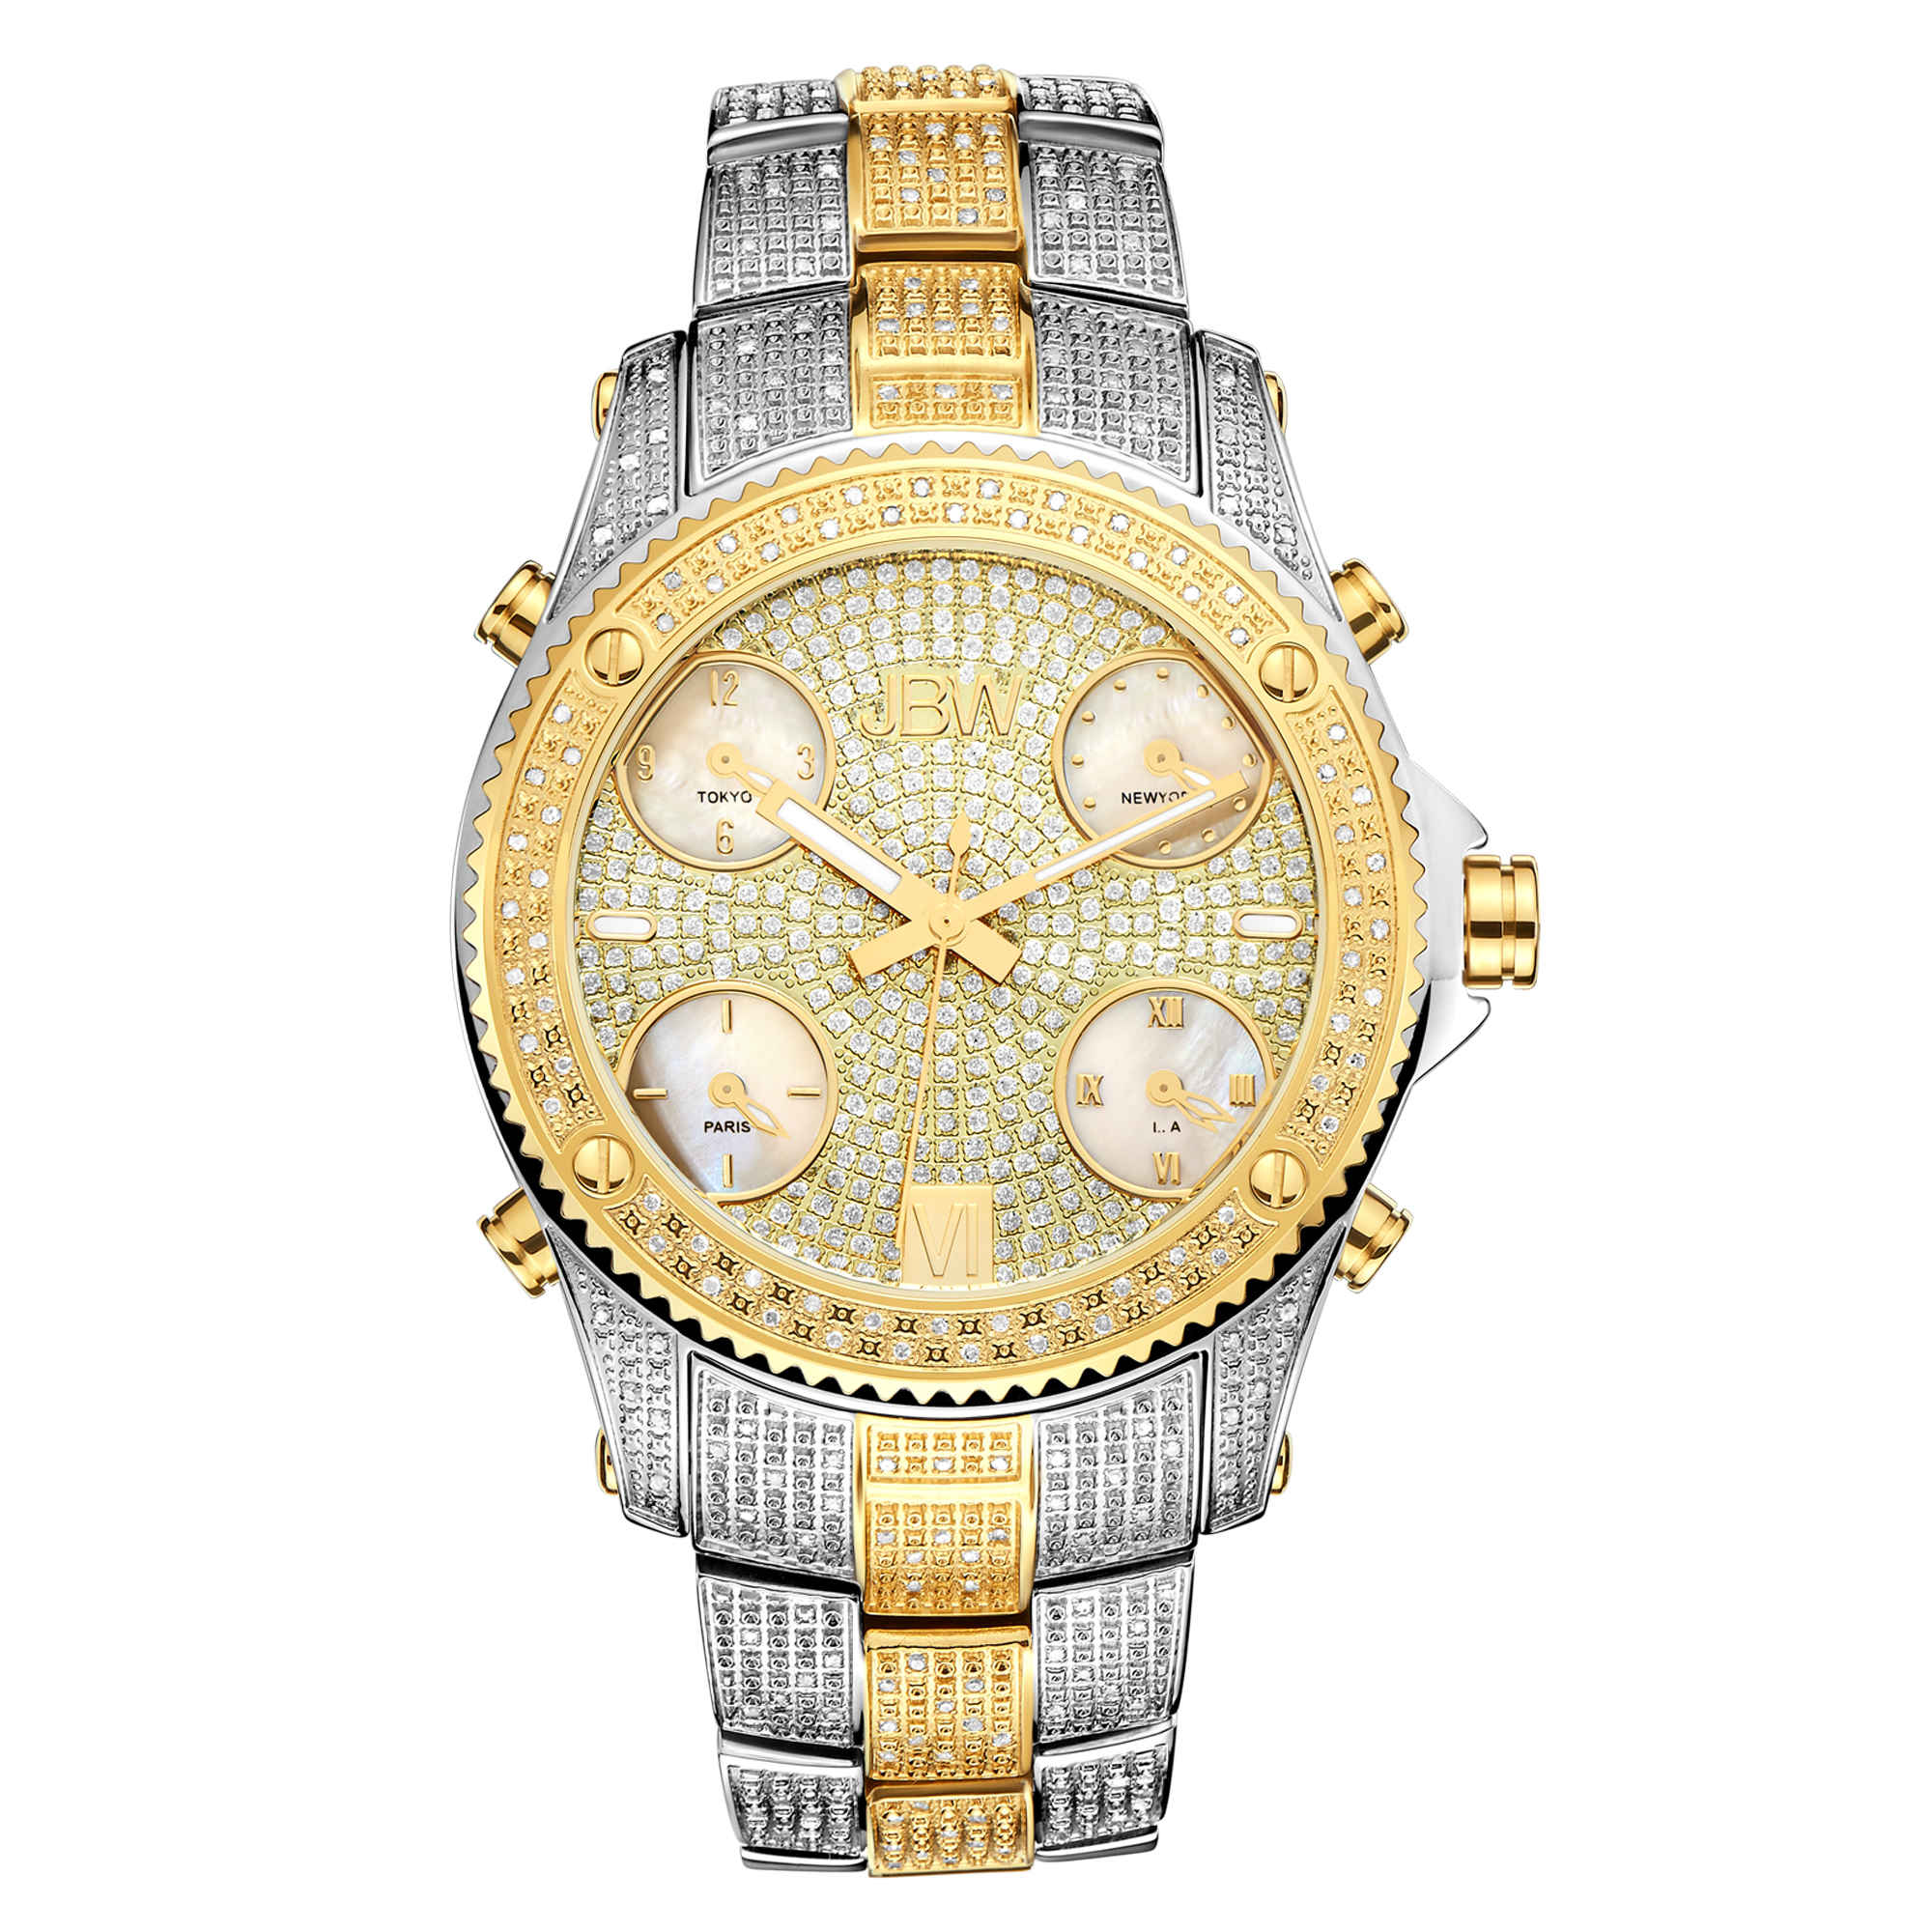 Jbw Jet Setter Two-tone Diamond Multiple Time Zone Mens Watch Jb-6213-e In Gold Tone,mother Of Pearl,silver Tone,two Tone